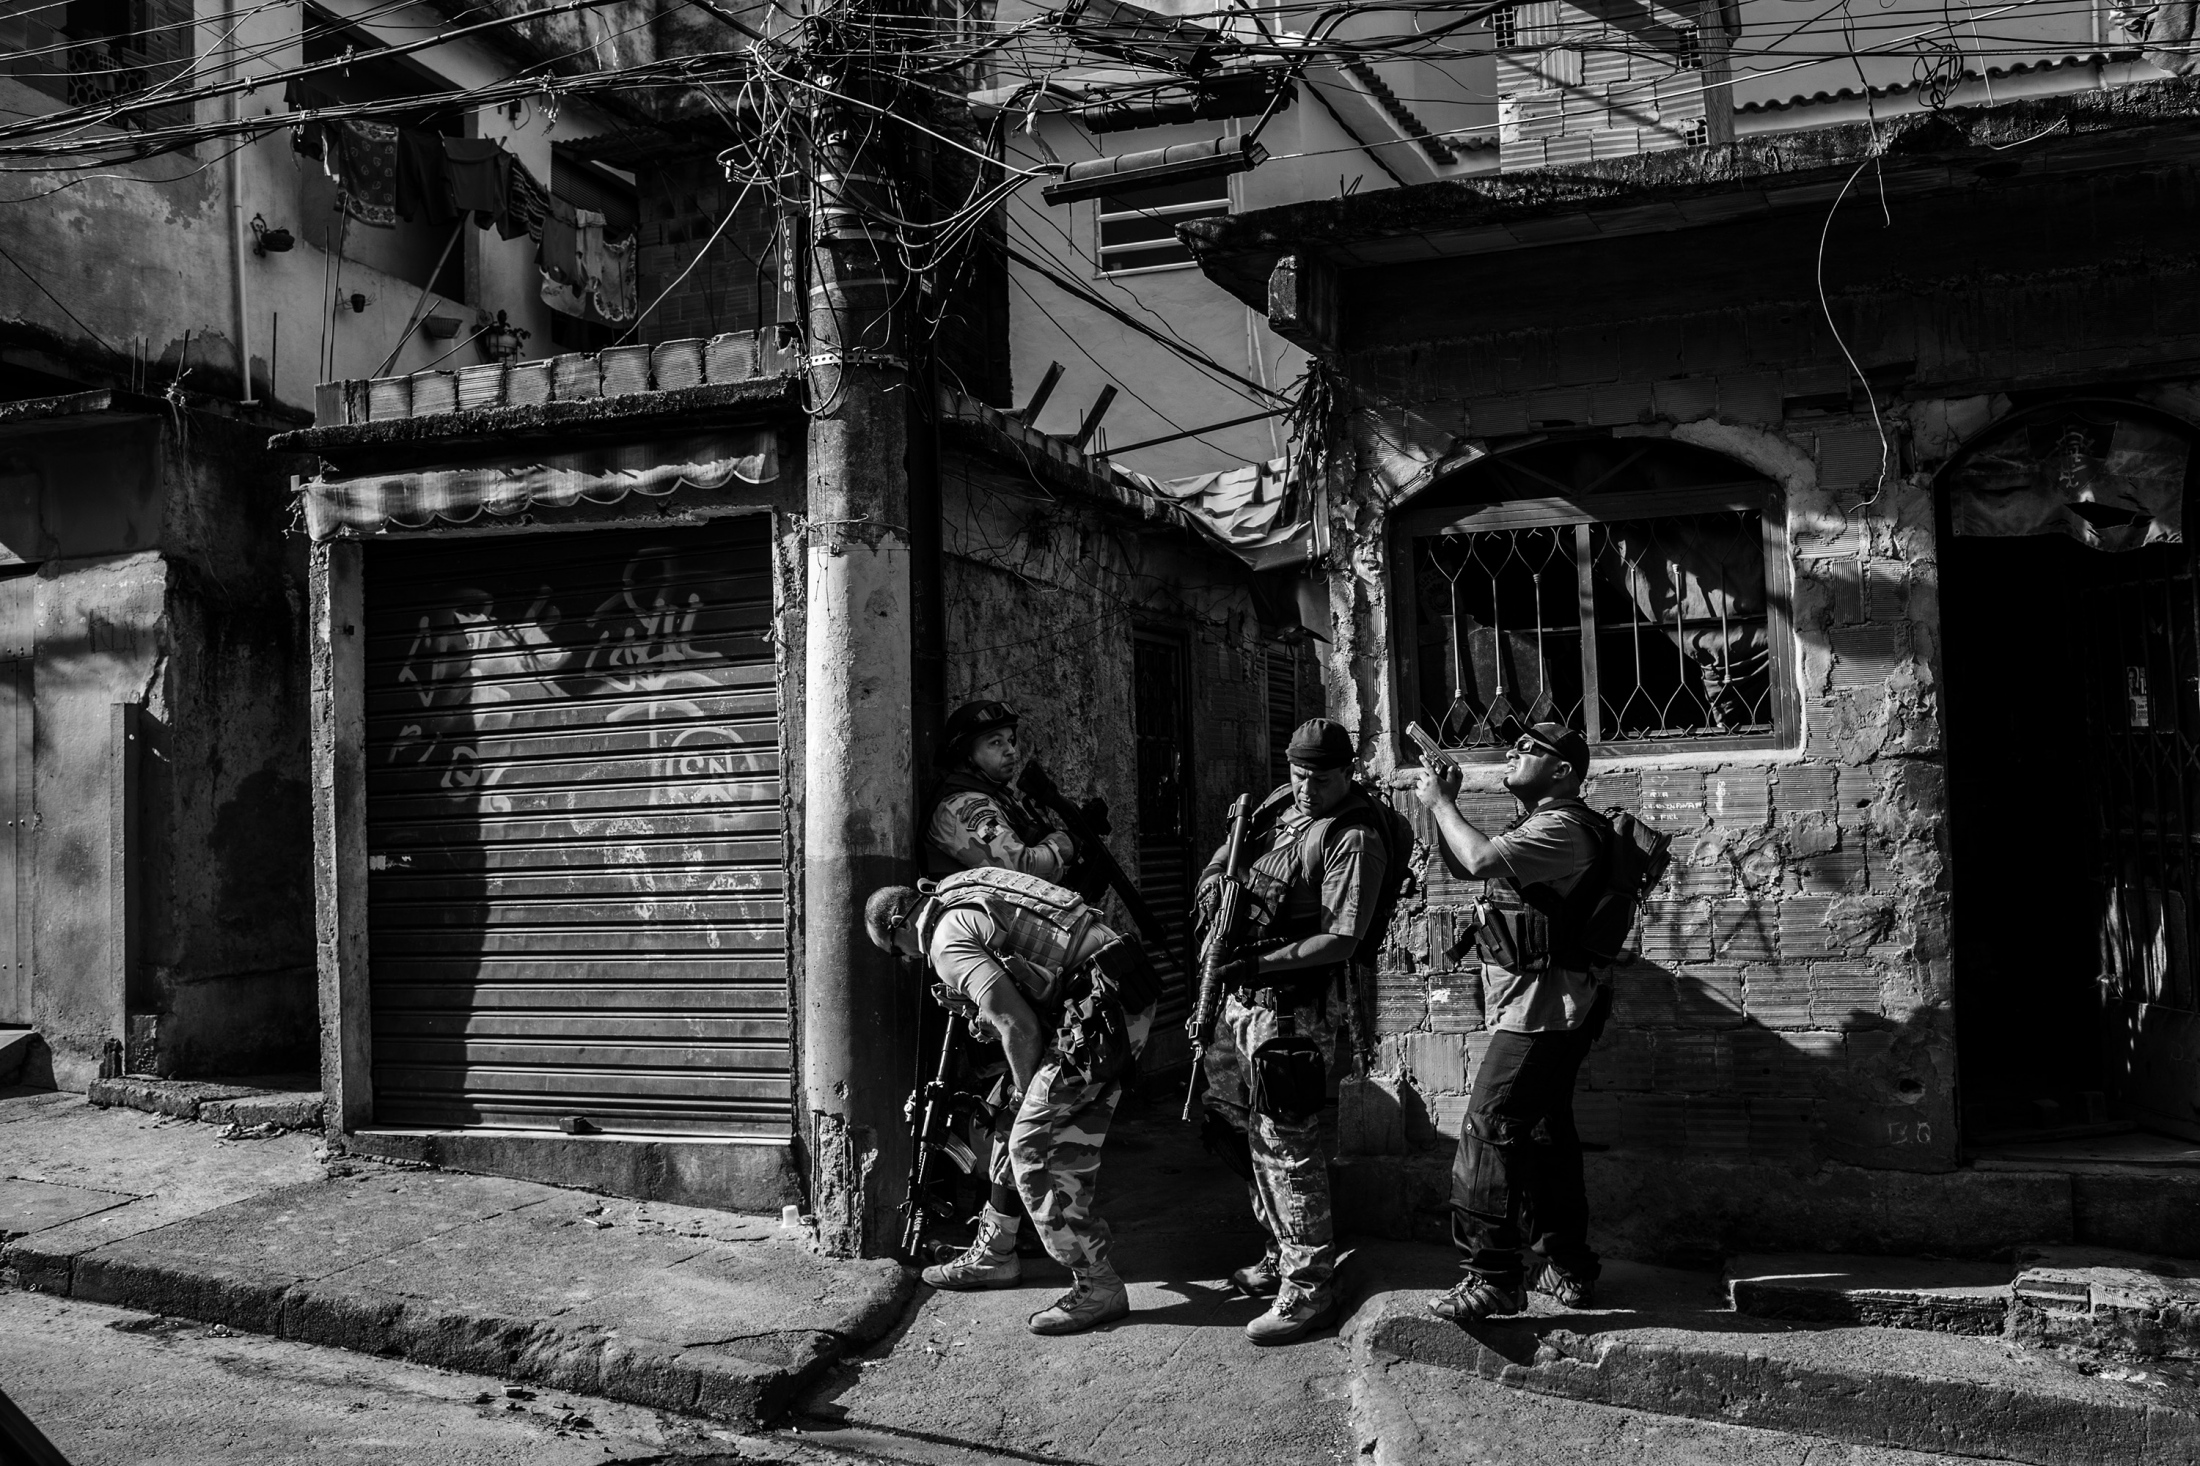 Agents from the Civilian Police during an operation to seize drugs and try to arrest suspected drug traffickers in Mangueira favela. During this operation, 1.5 tons of cannabis was seized, along with small quantities of crack and cocaine. May 2009.